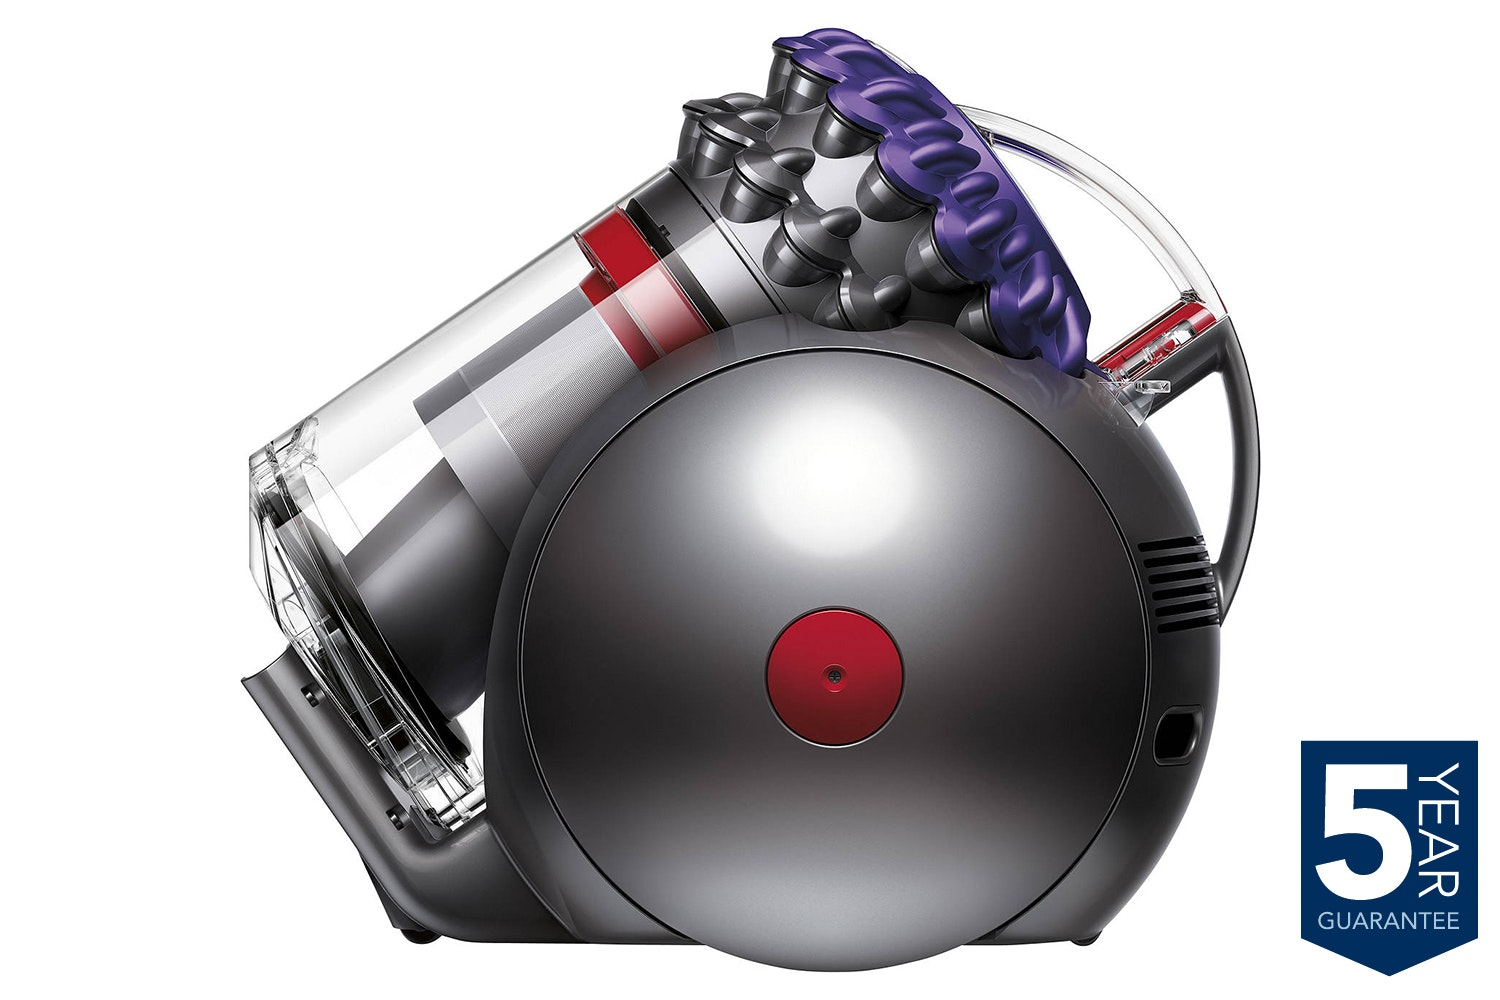 Dyson Big Ball Animal 2 Cylinder Vacuum Cleaner | 228563-01